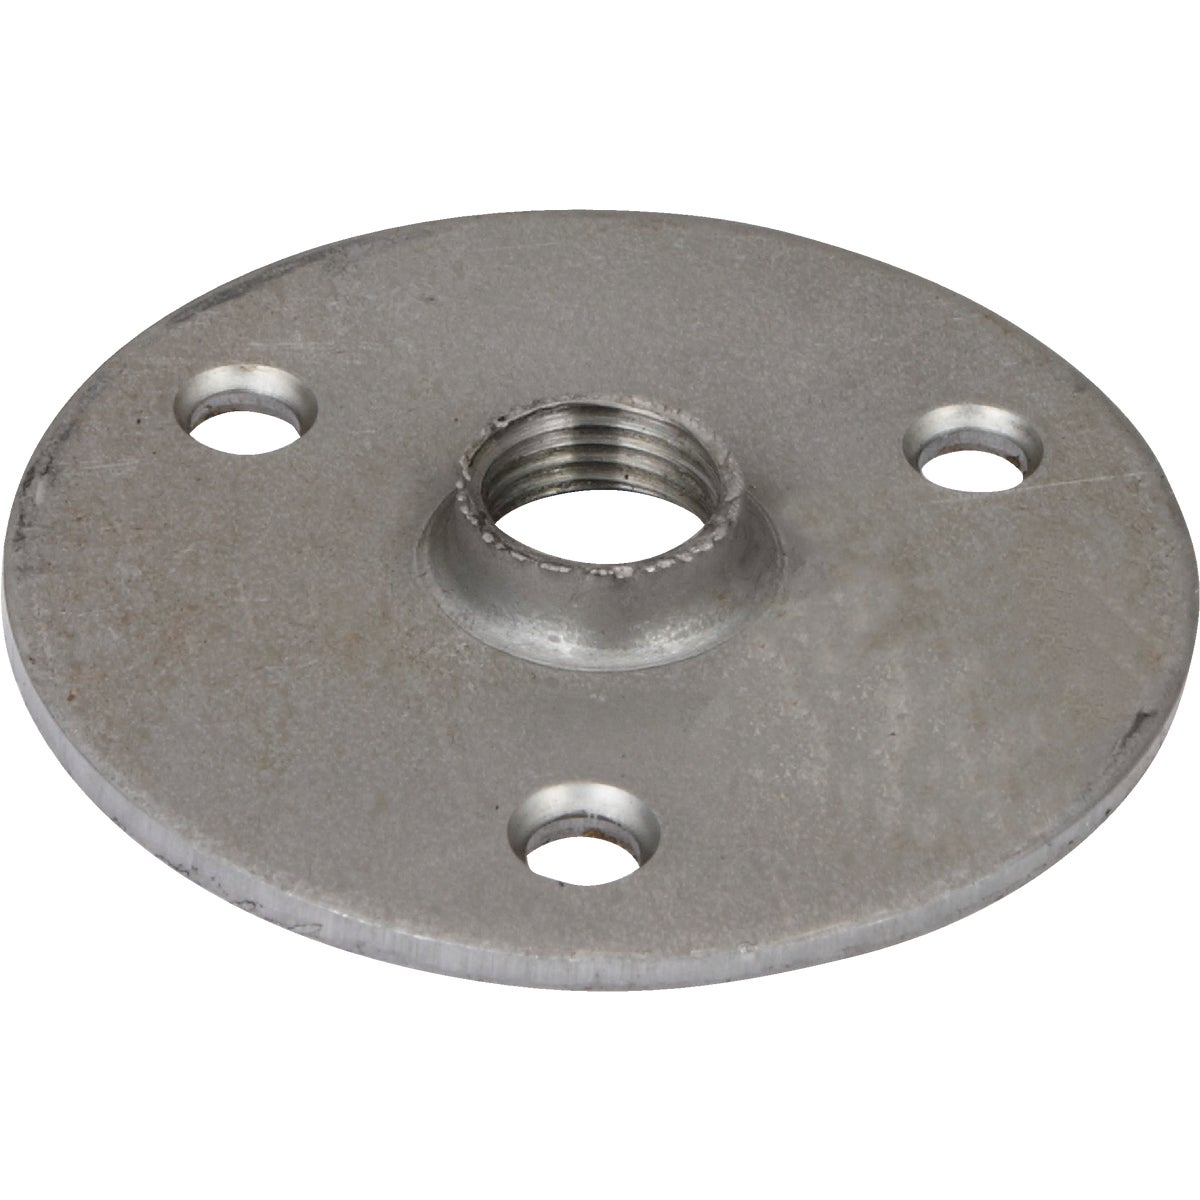 "1/2"" STEEL FLOOR FLANGE -  by Western Reserve Mfg"